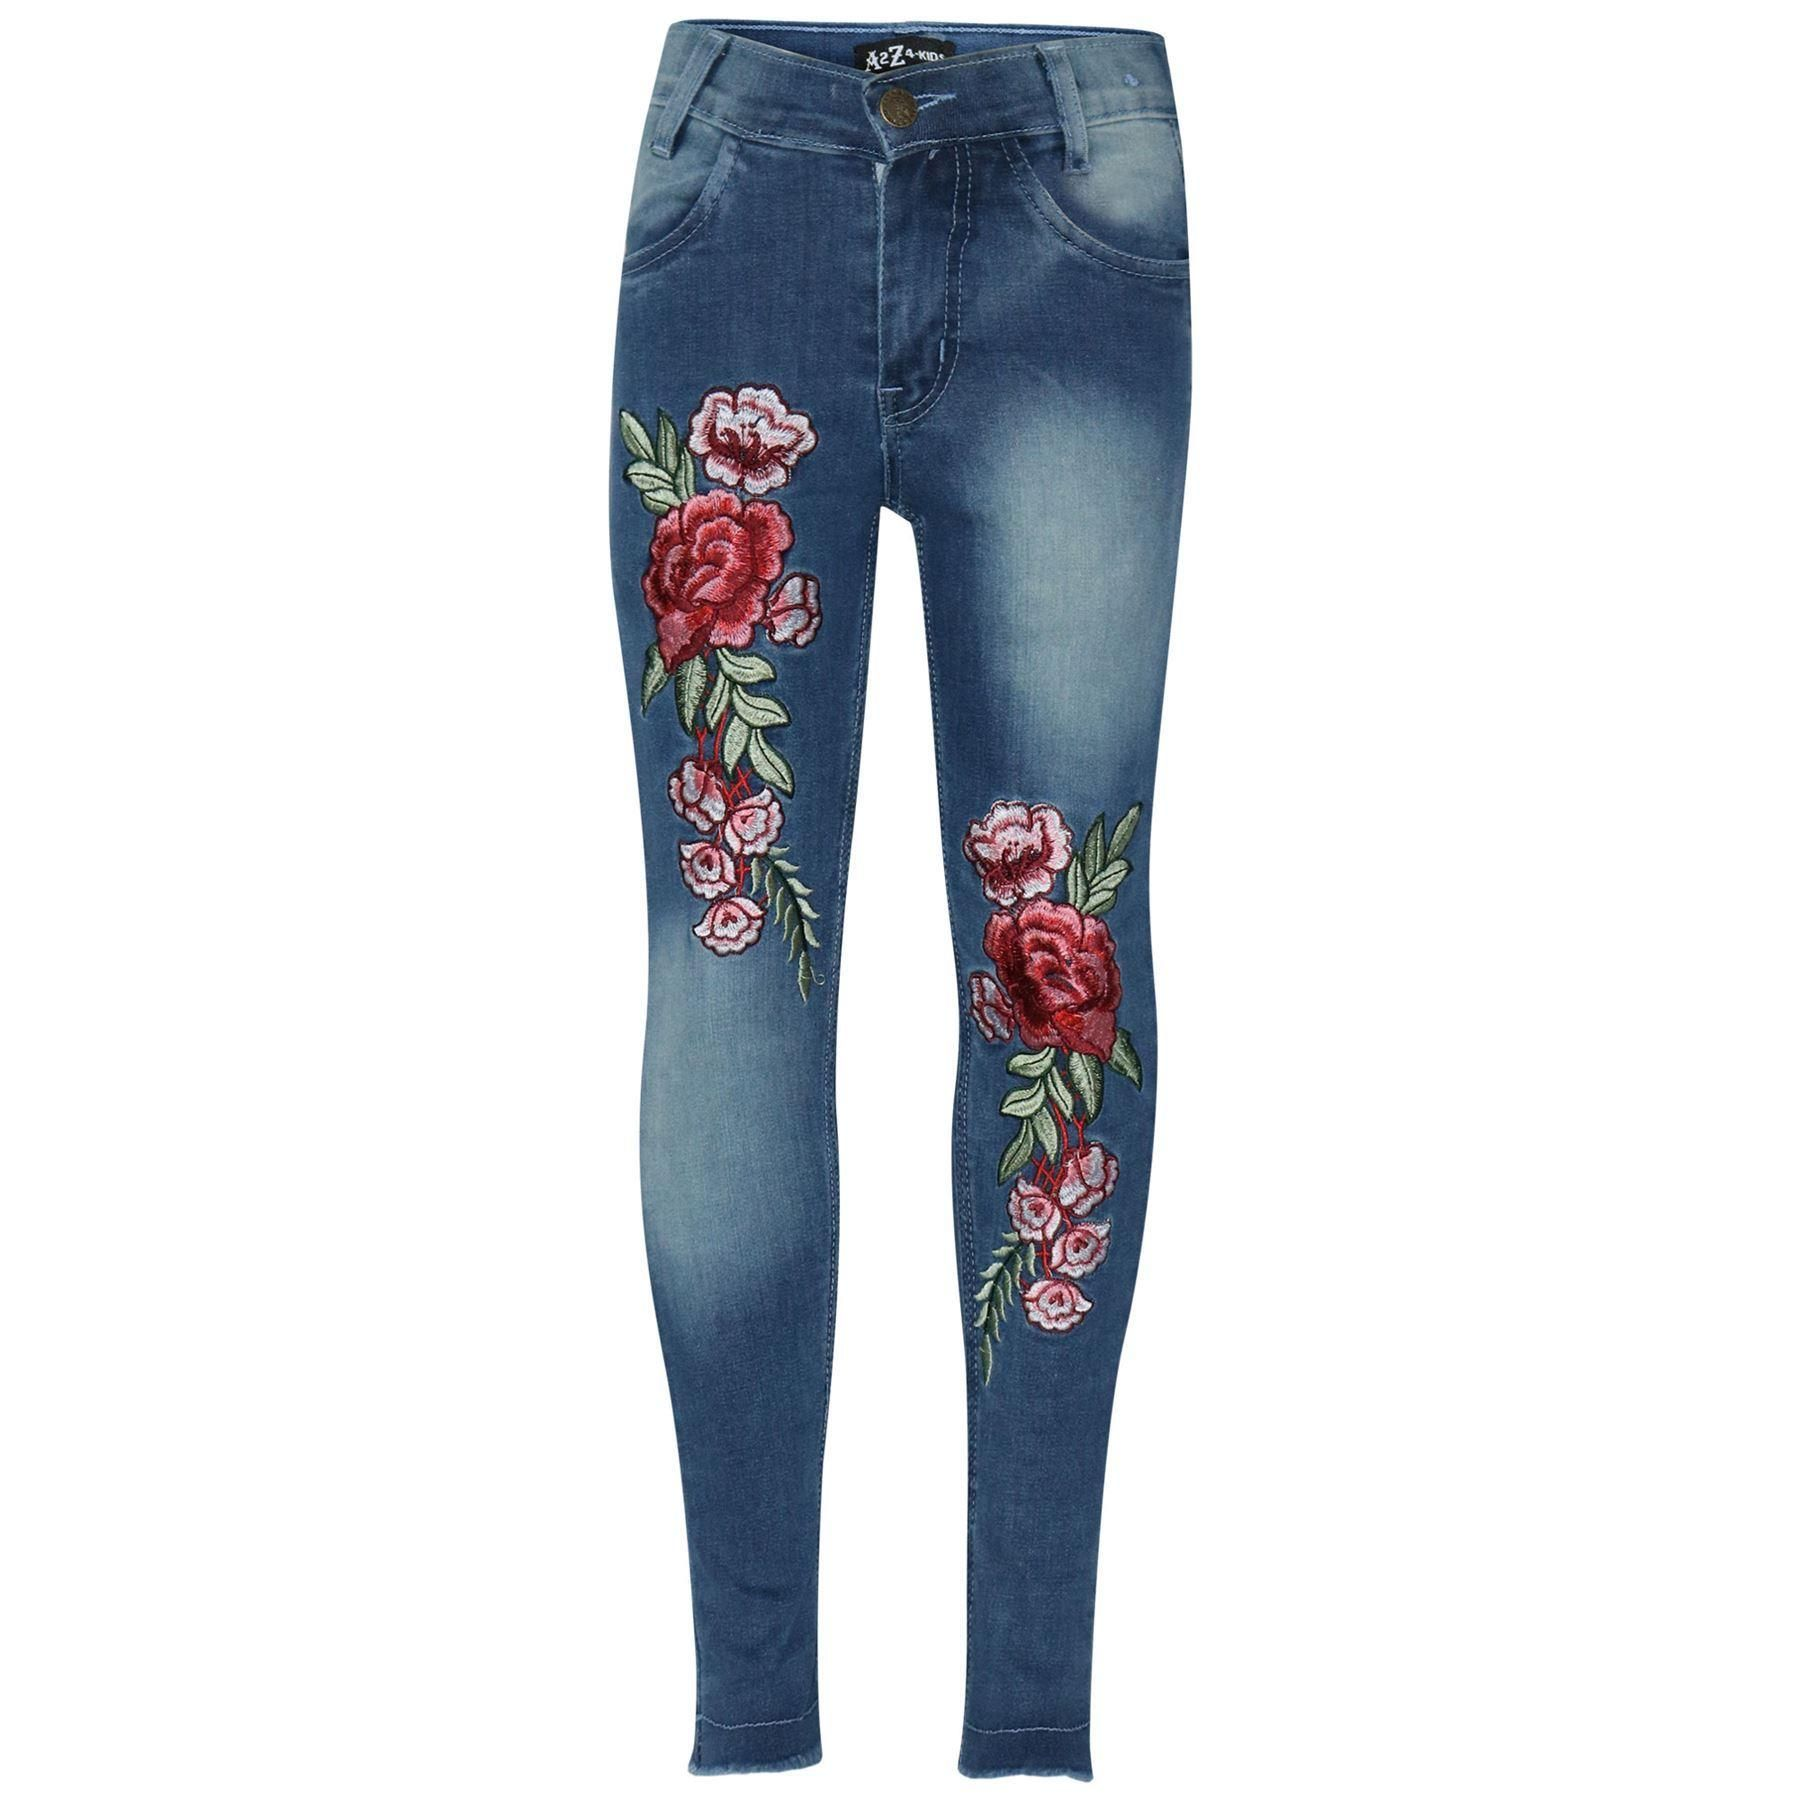 A2Z 4 Kids Kids Girls Stretchy Jeans Designers Rose Embroidered Dark Blue Denim Pants Fashion Fit Trousers Jeggings New Age 3 4 5 6 7 8 9 10 11 12 Years